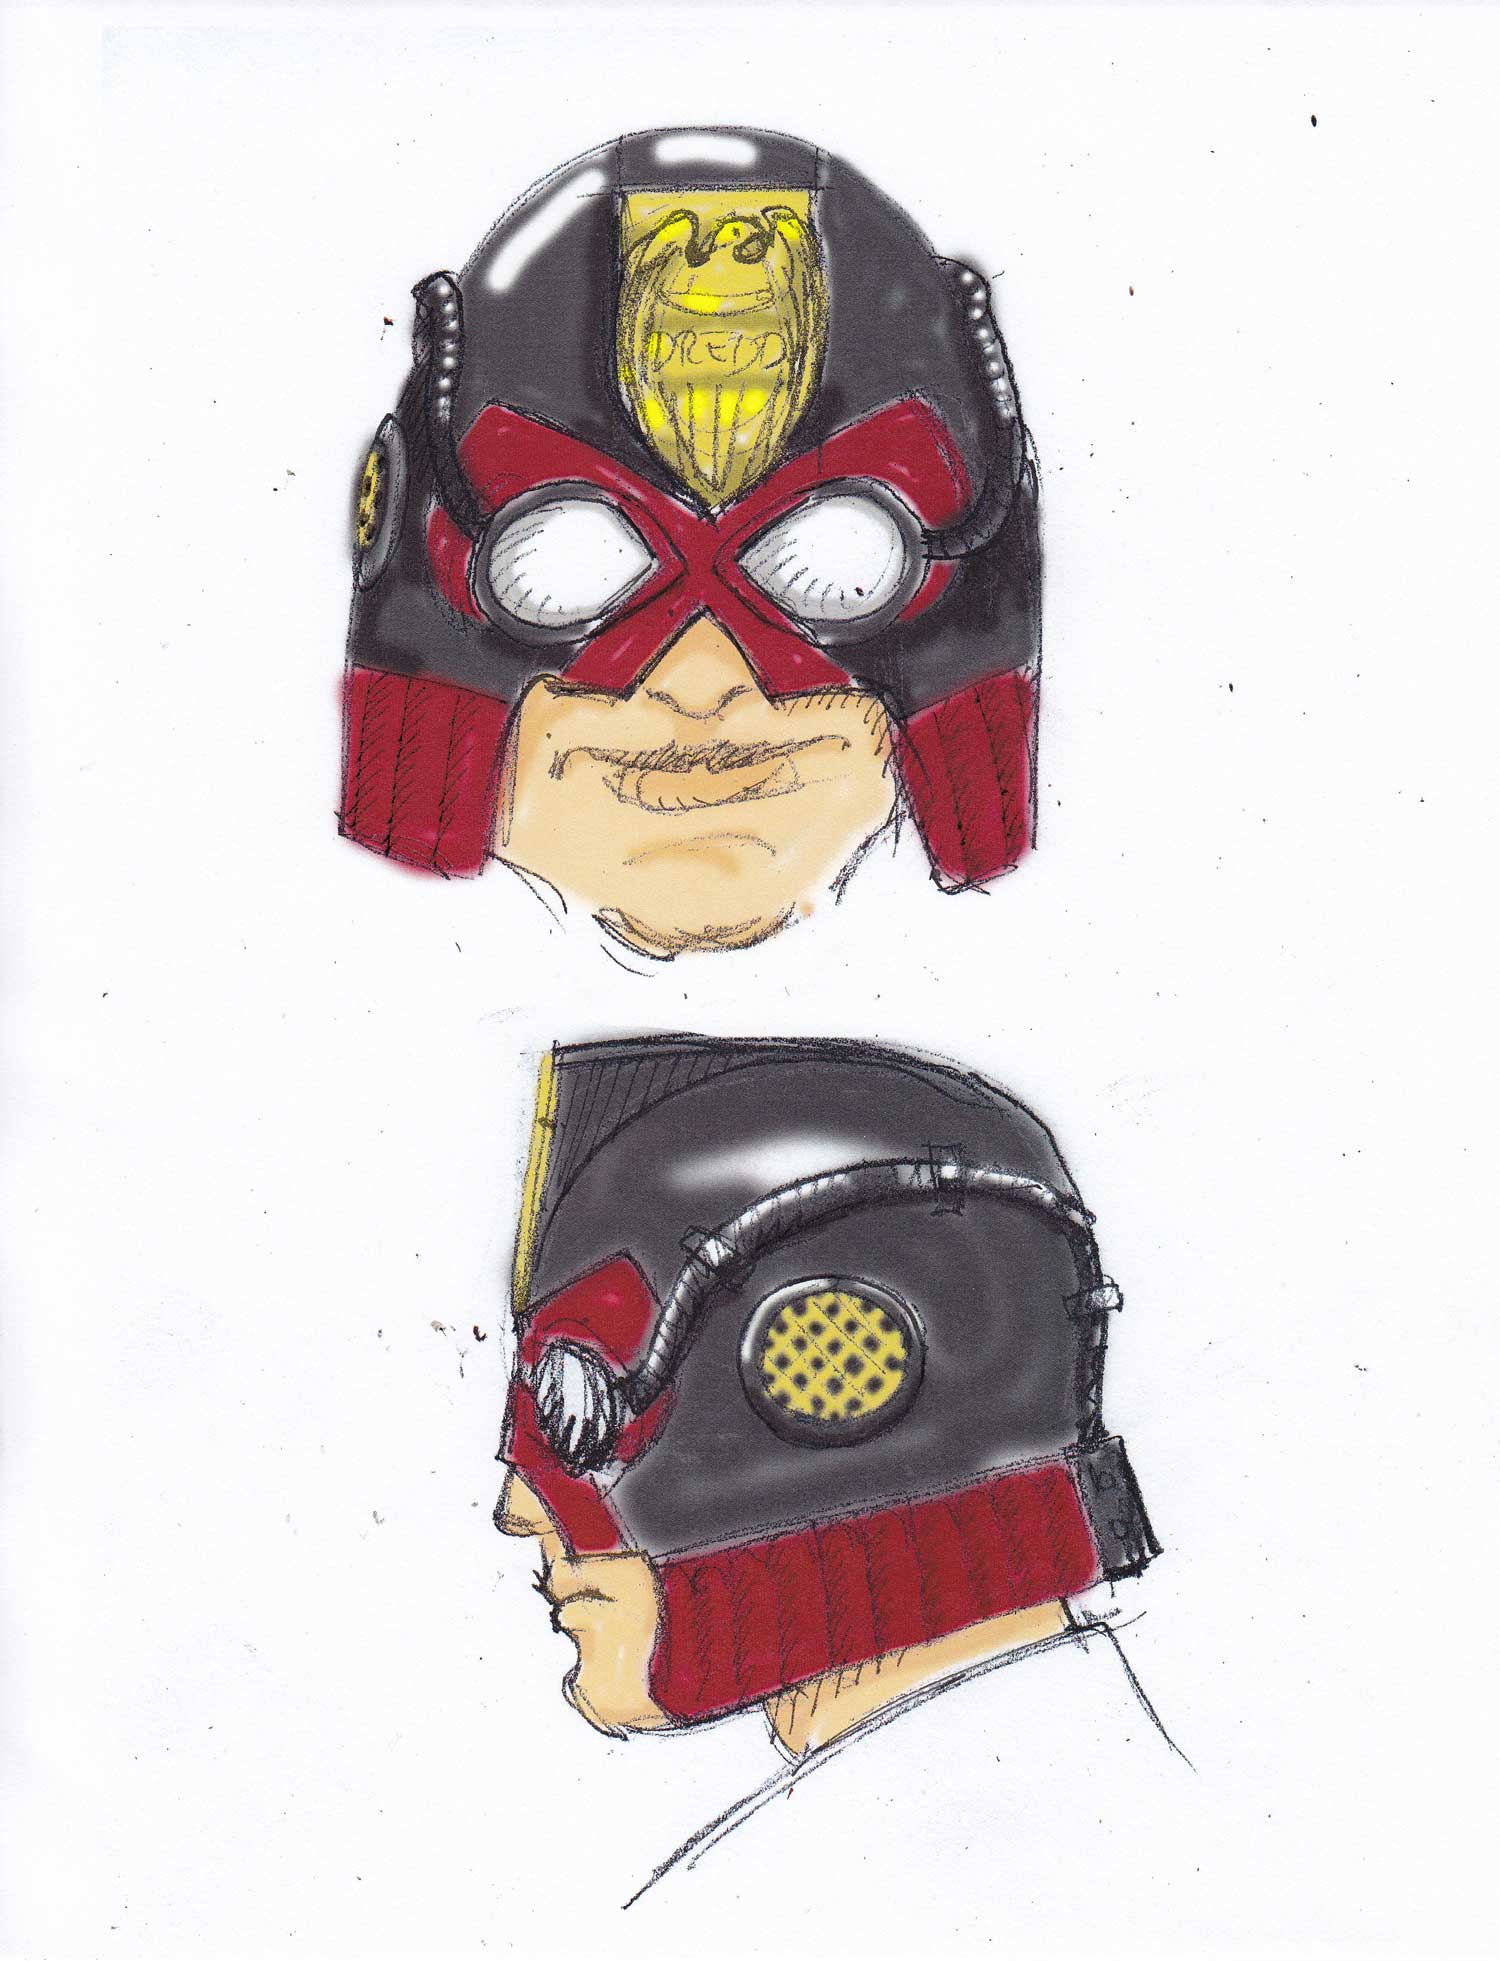 My preliminary sketches for a steampunk version of the helmet